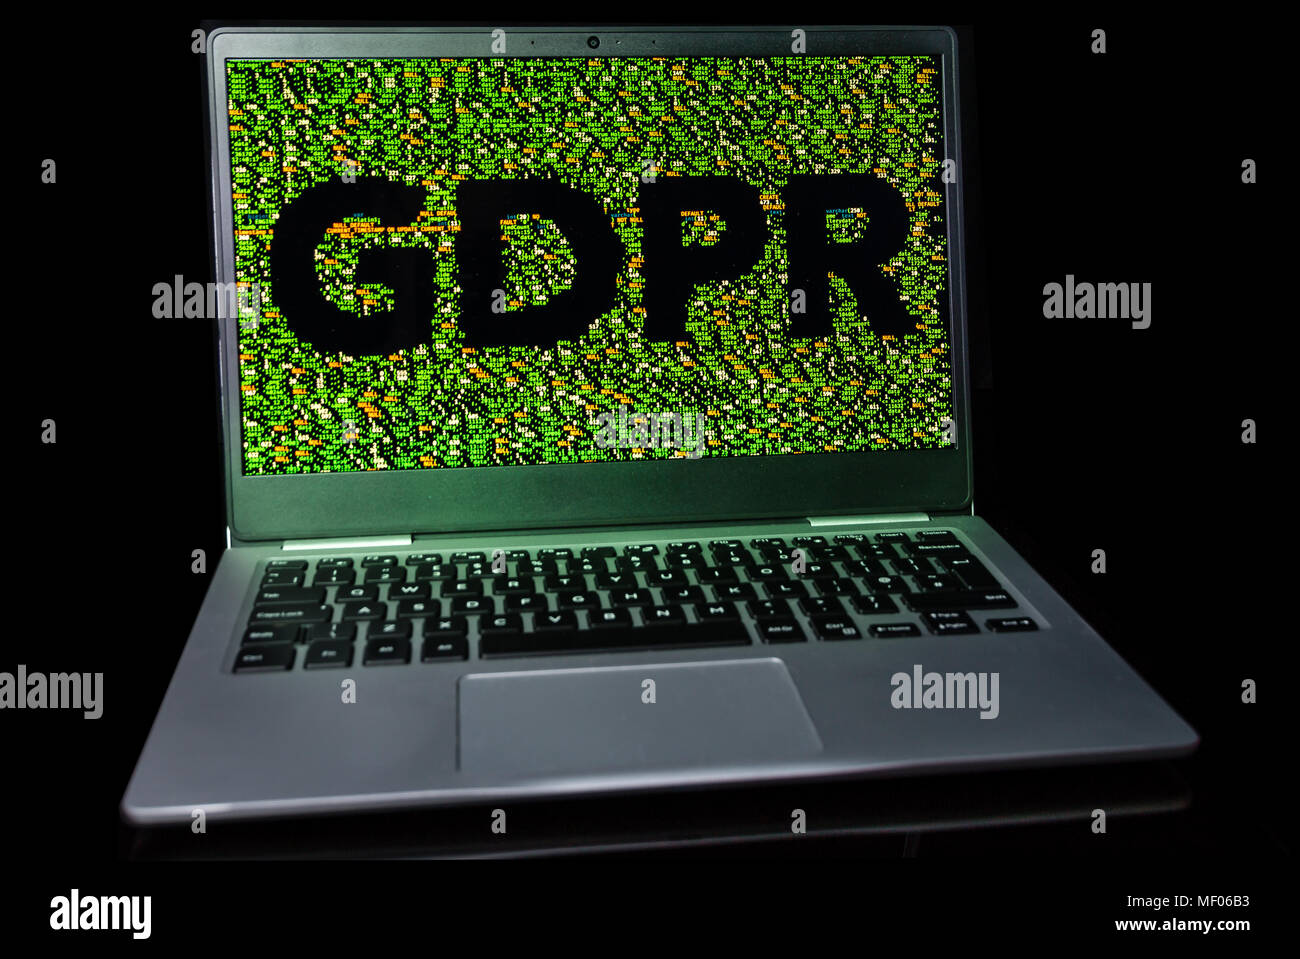 GDPR text outlined in database code on a laptop screen. - Stock Image